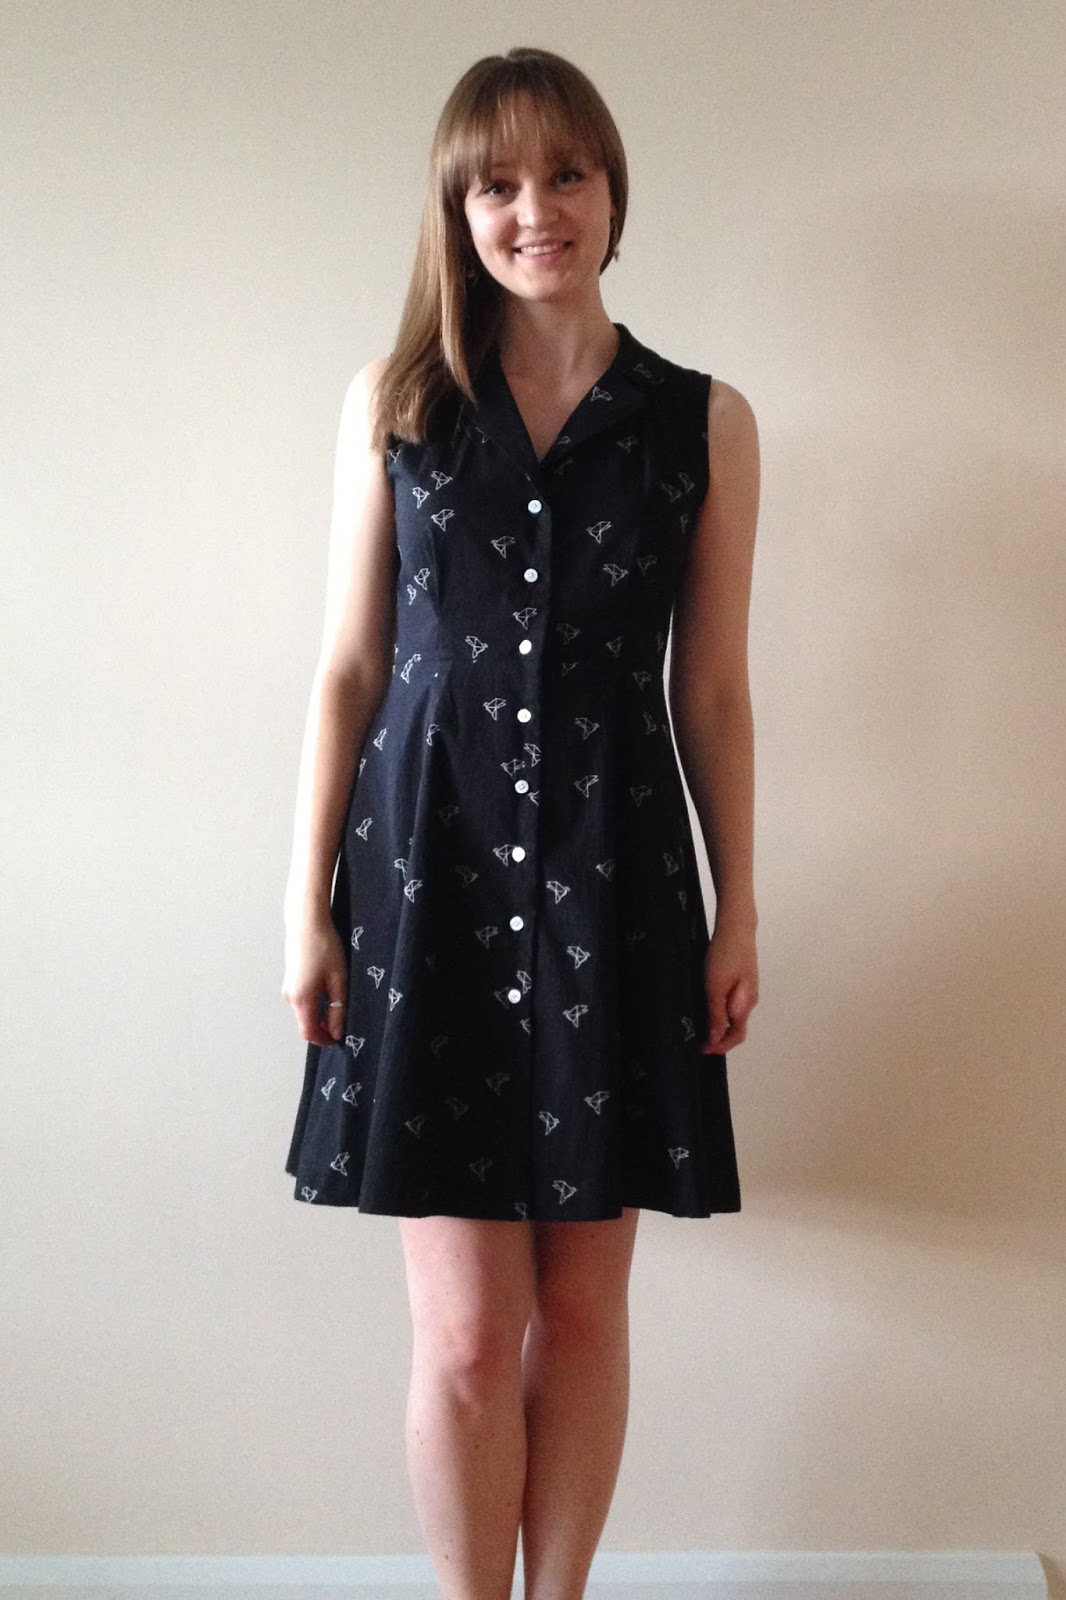 a7a8120ec54fe Diary of a Chain Stitcher  Sew Over It Vintage Shirt Dress in Atelier  Brunette Origami